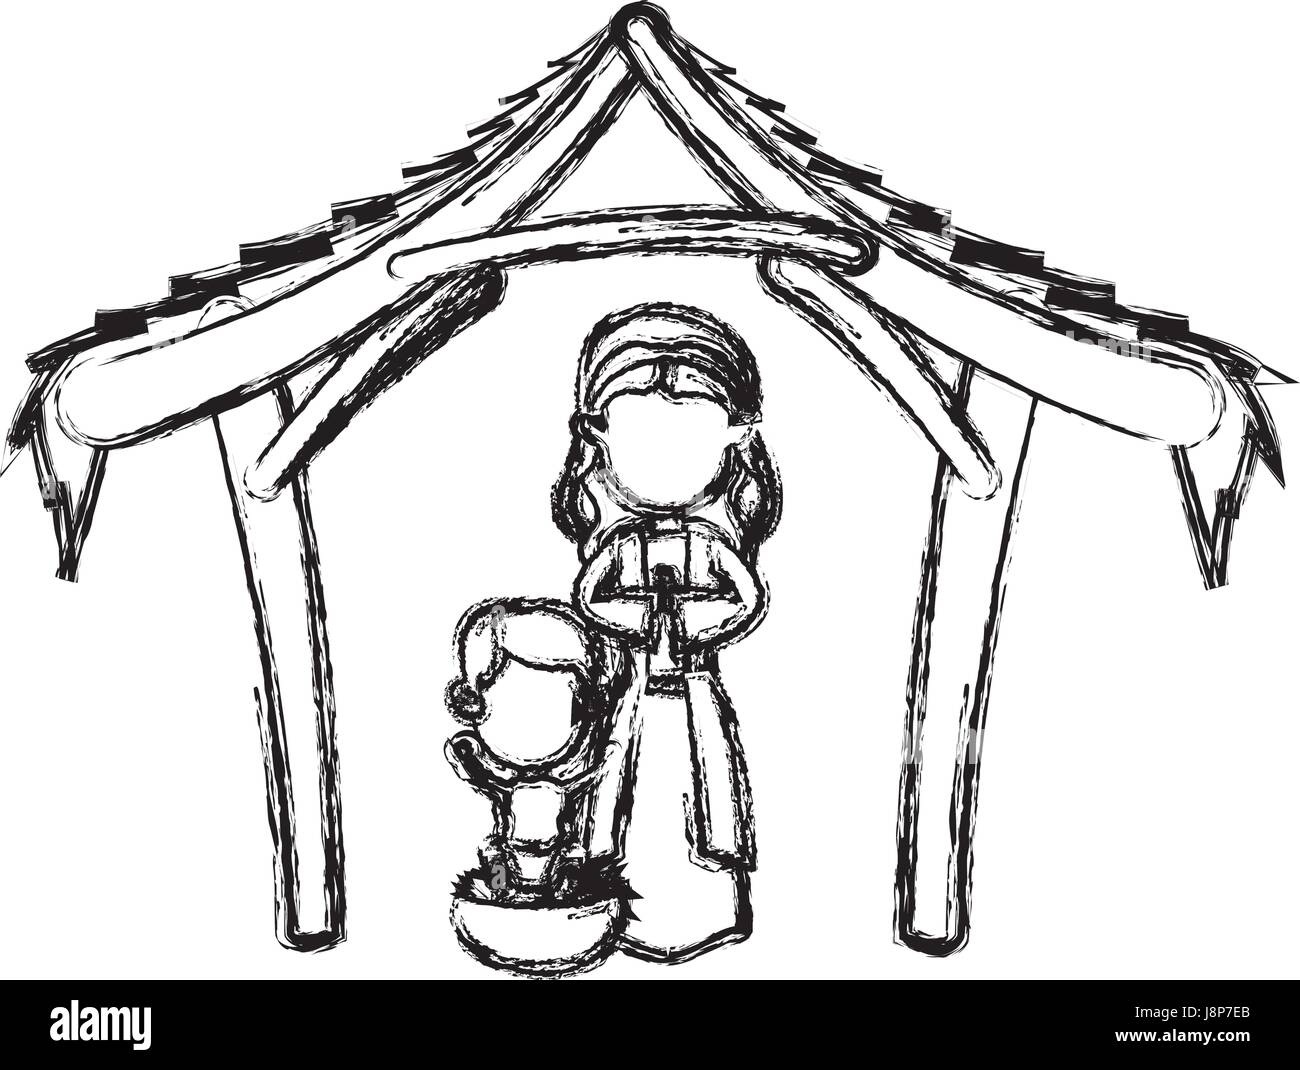 Manger Virgin Mary And Baby Jesus In Hut Image Stock